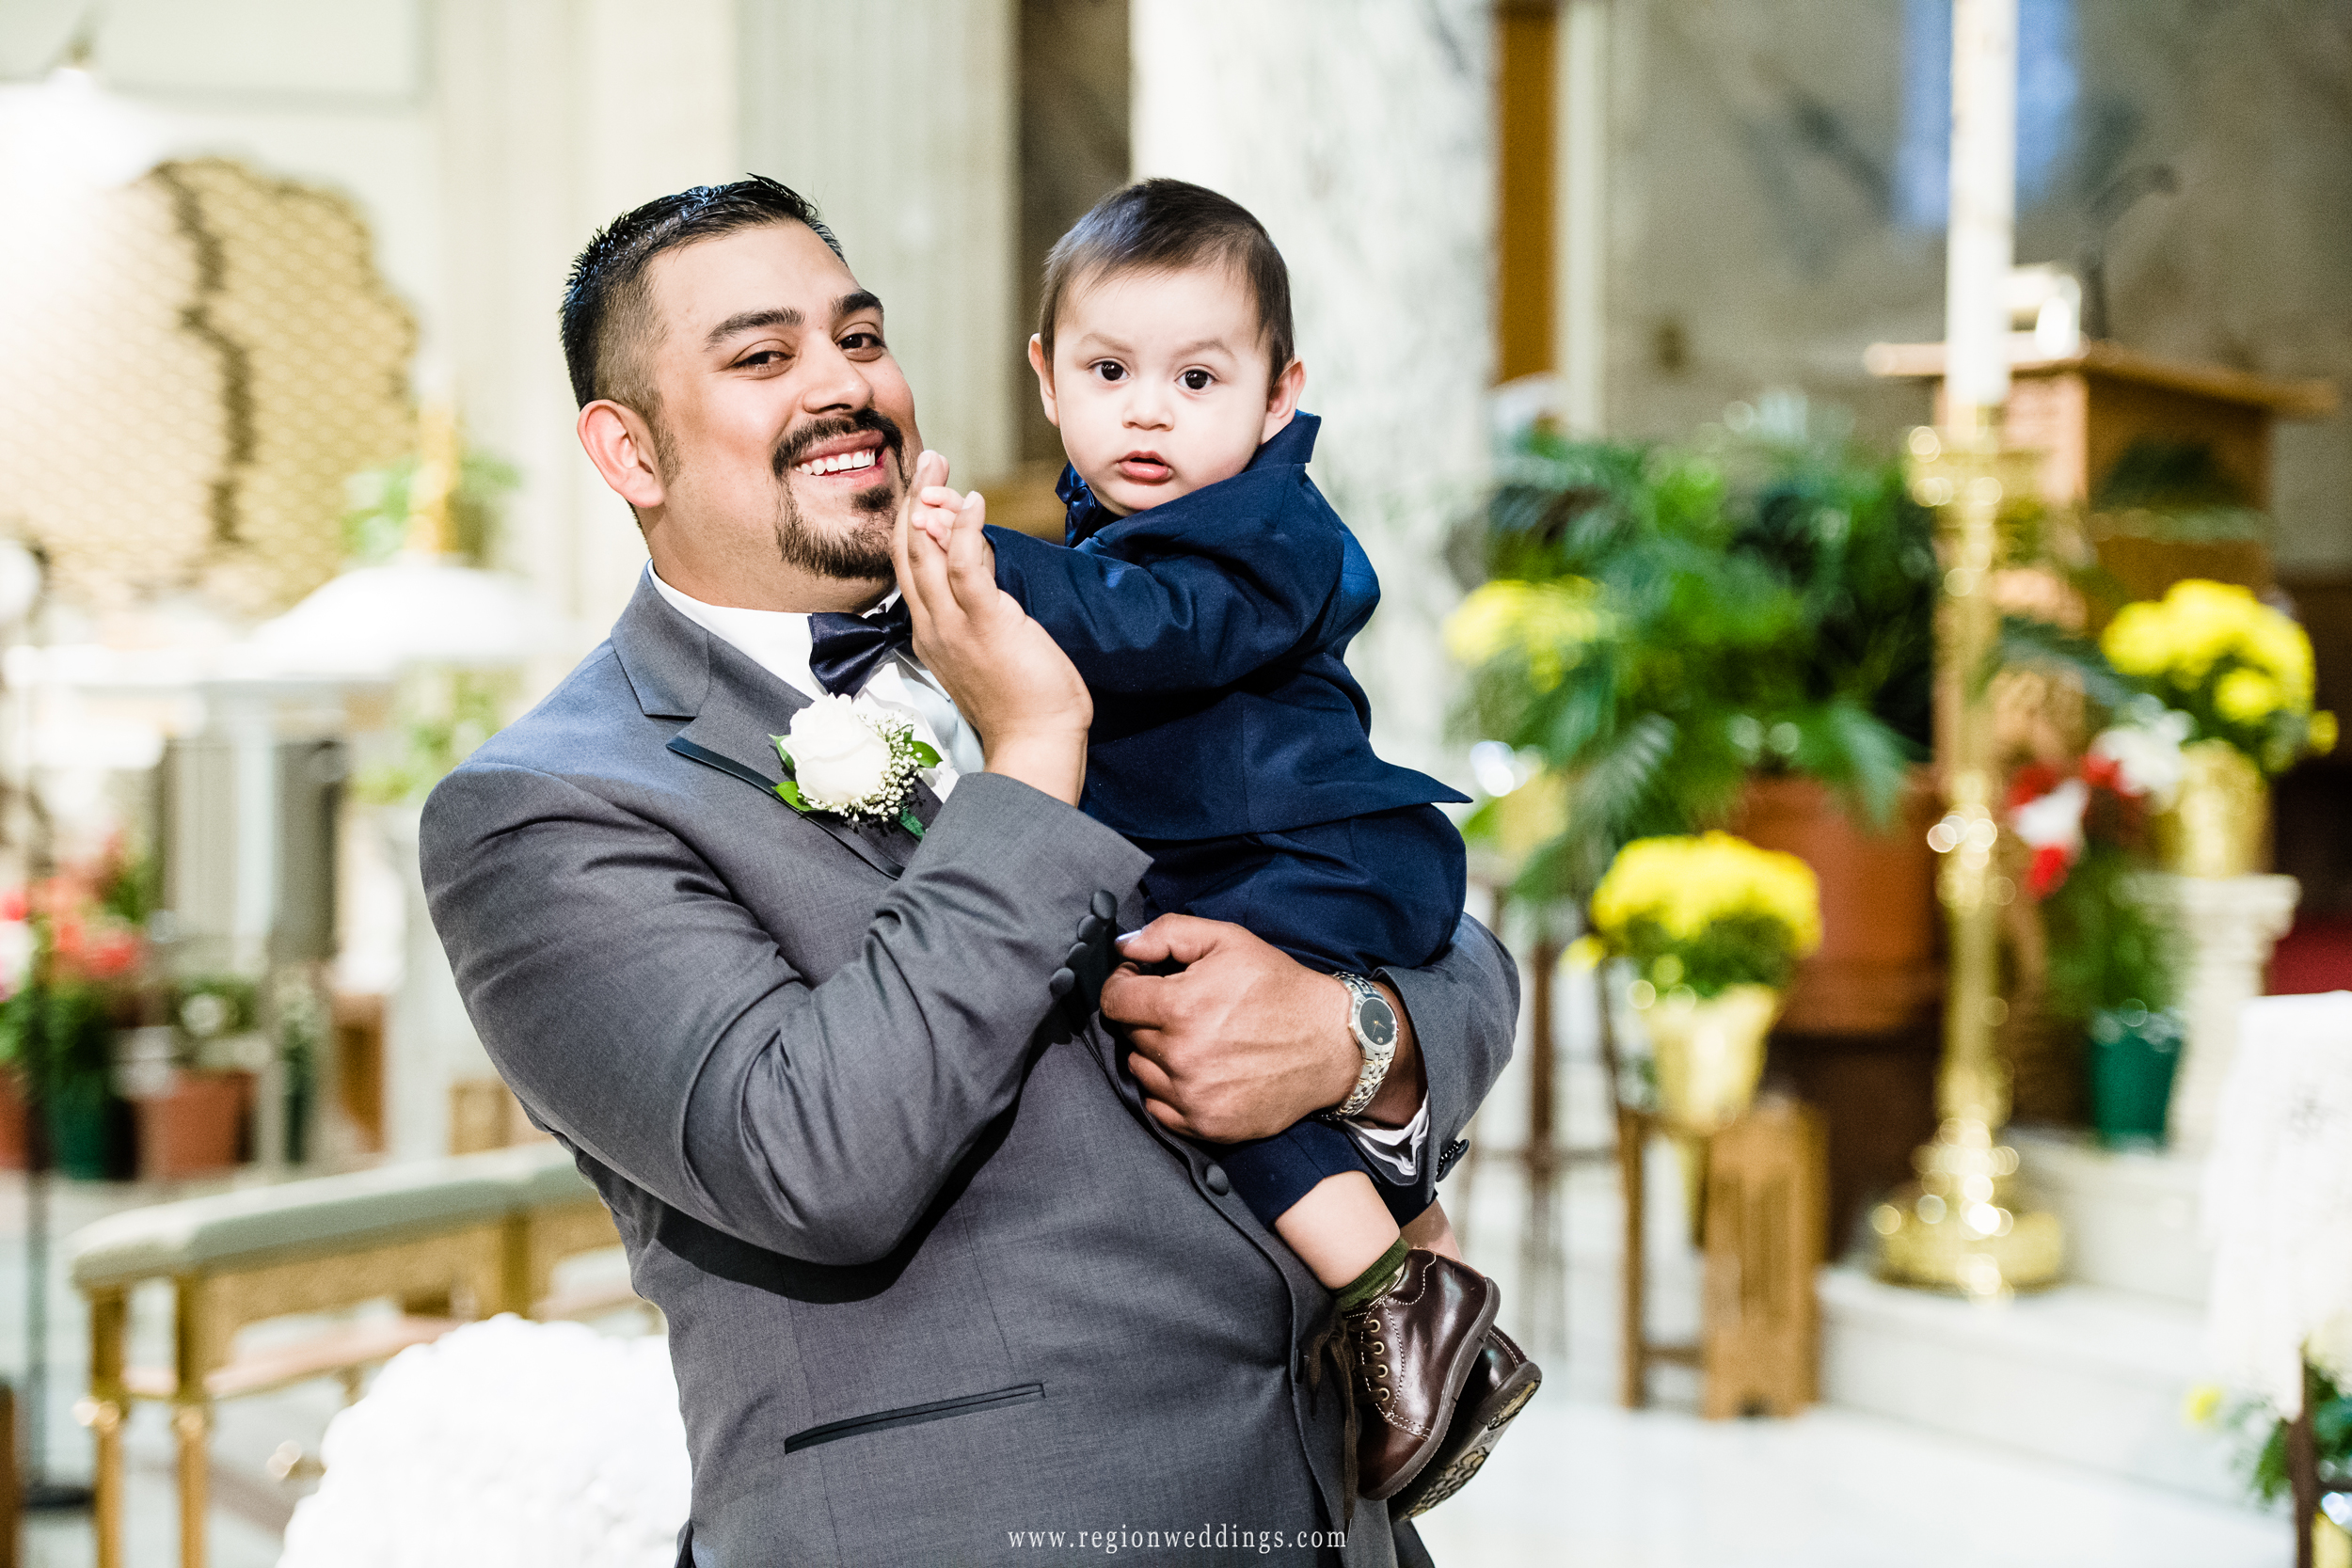 The groom with his son at church.